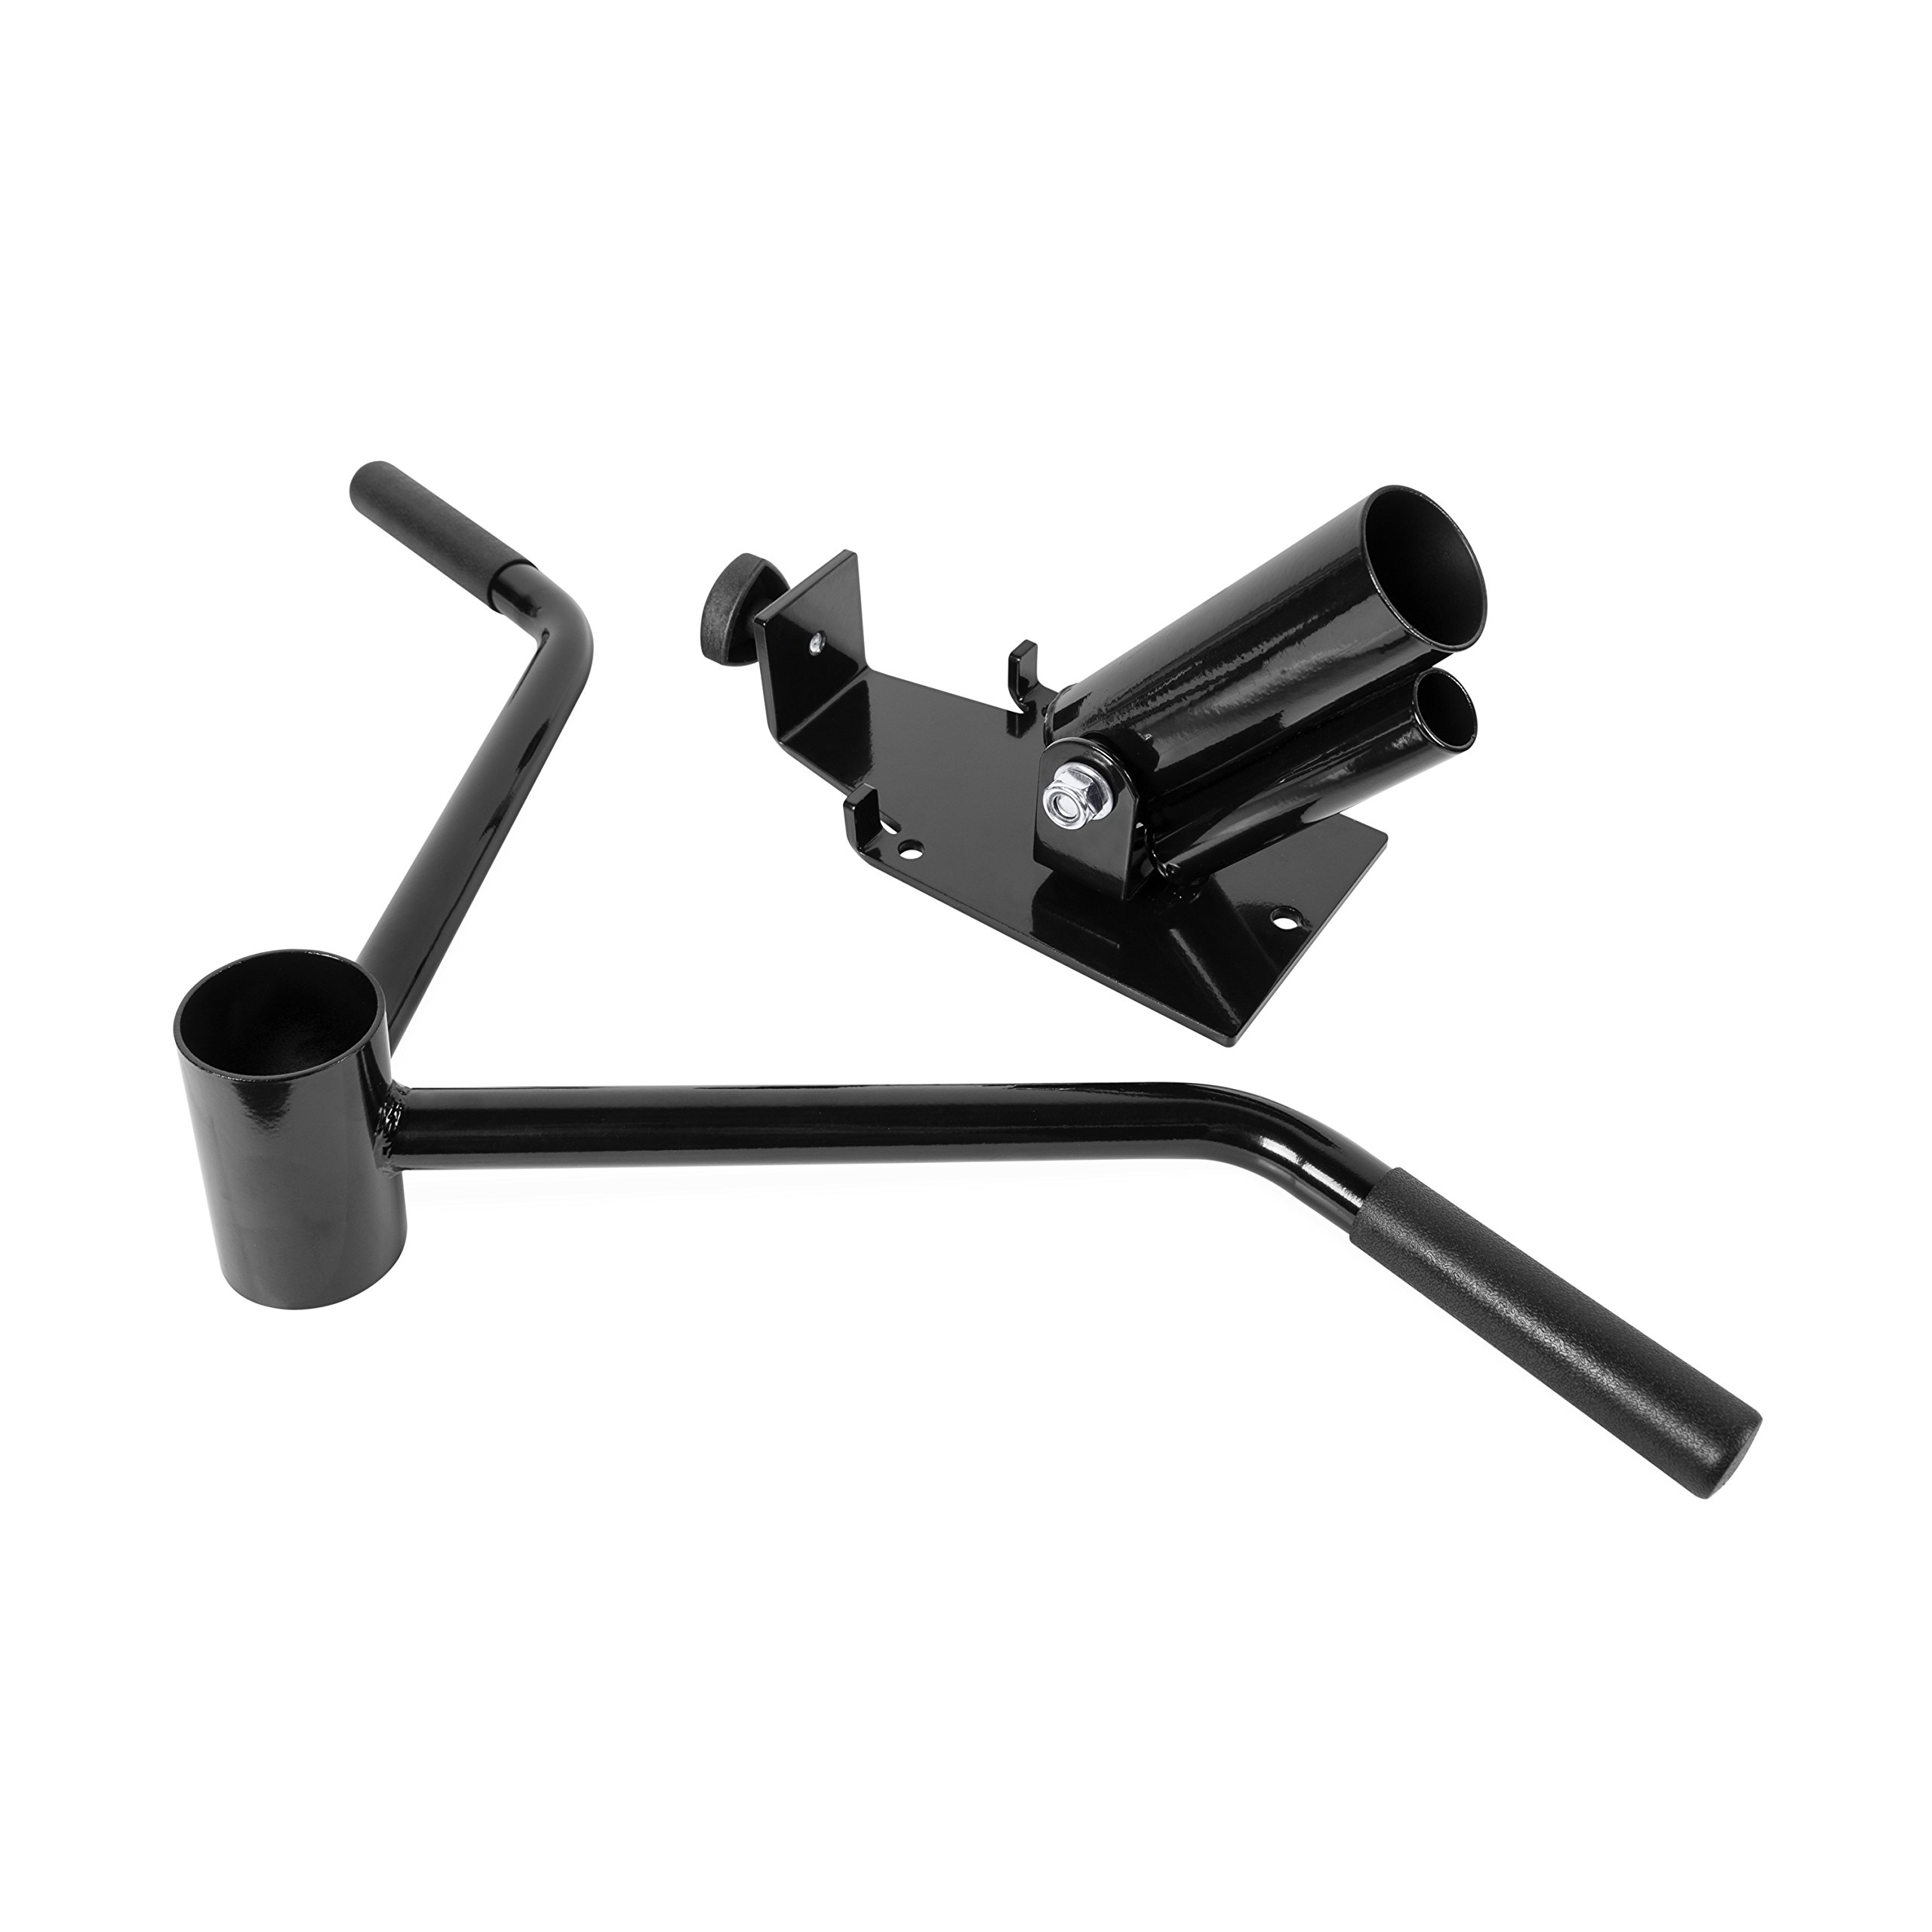 CAP Barbell Landmine Attachment for Barbell | T-Bar Row Attachment | Bundles Available